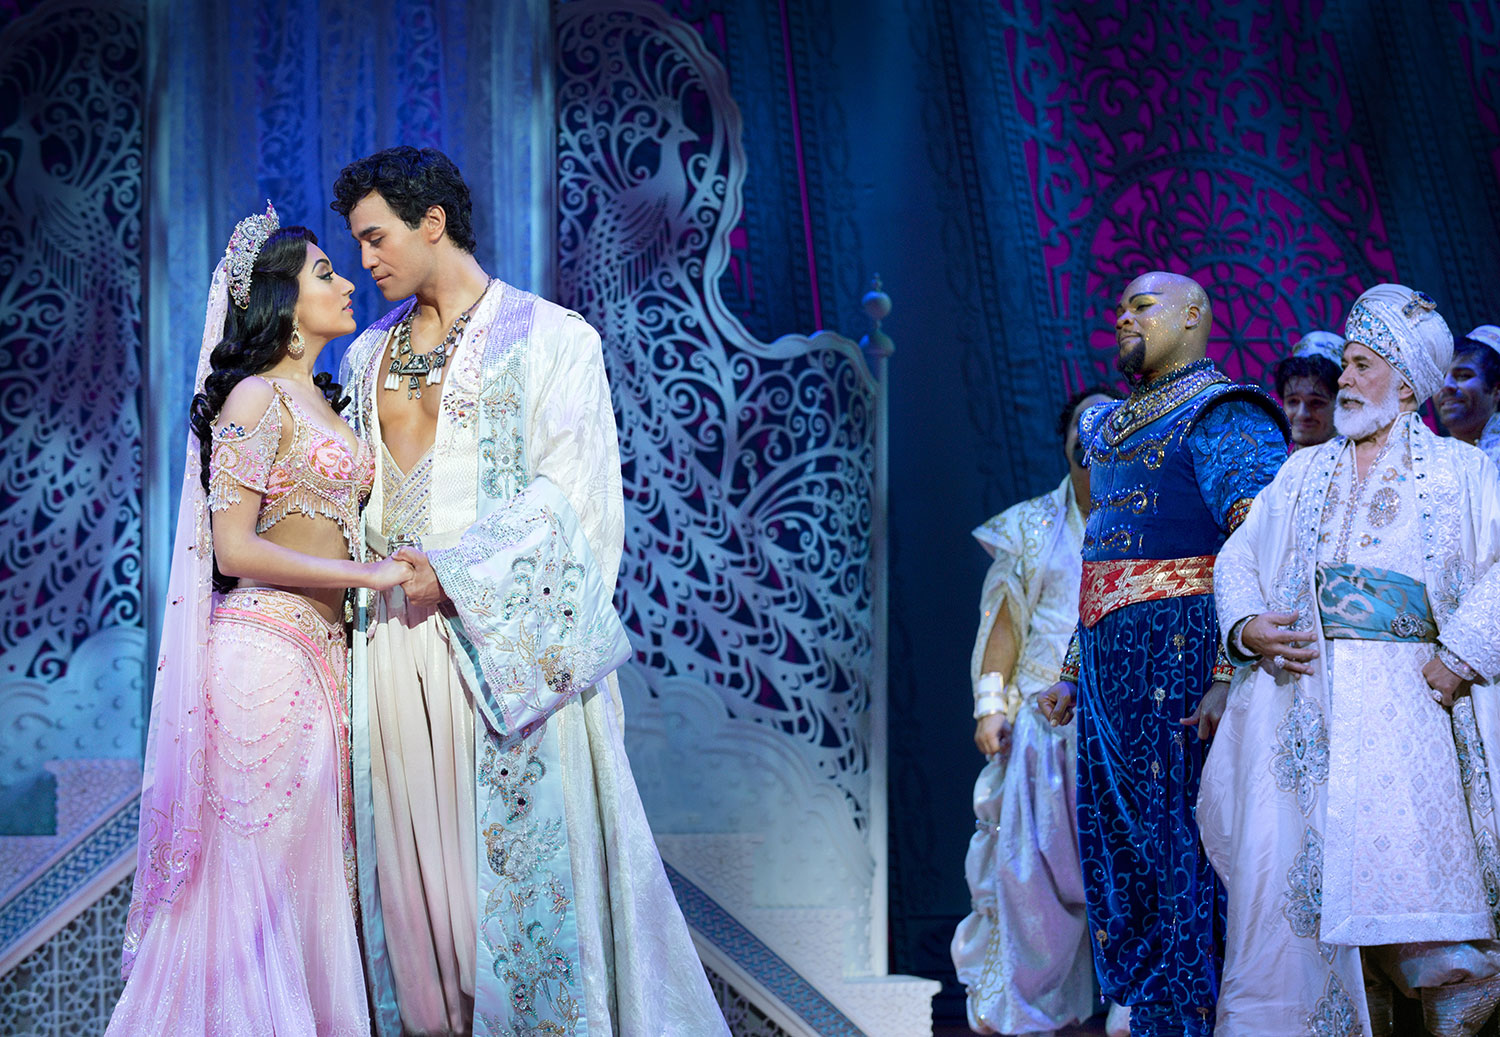 Aladdin the Broadway musical in Singapore